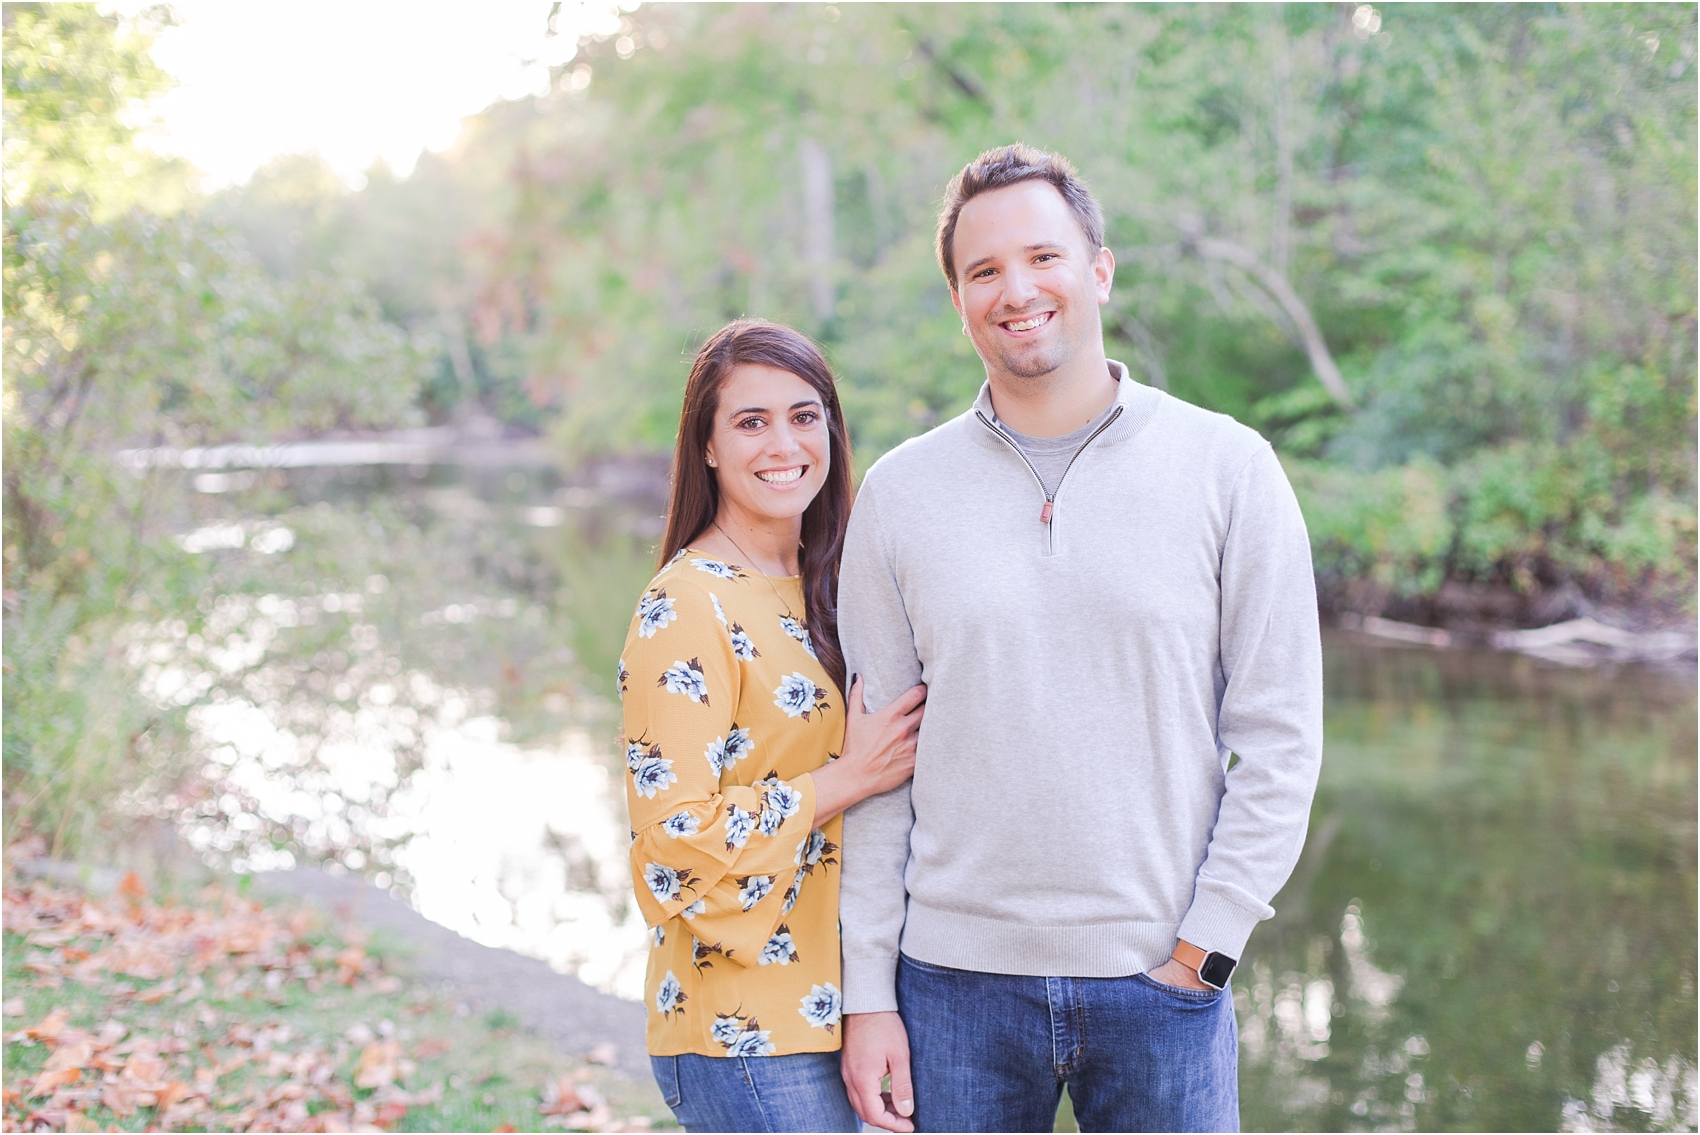 relaxed-autumn-engagement-photos-at-hudson-mills-metropark-in-dexter-mi-by-courtney-carolyn-photography_0033.jpg